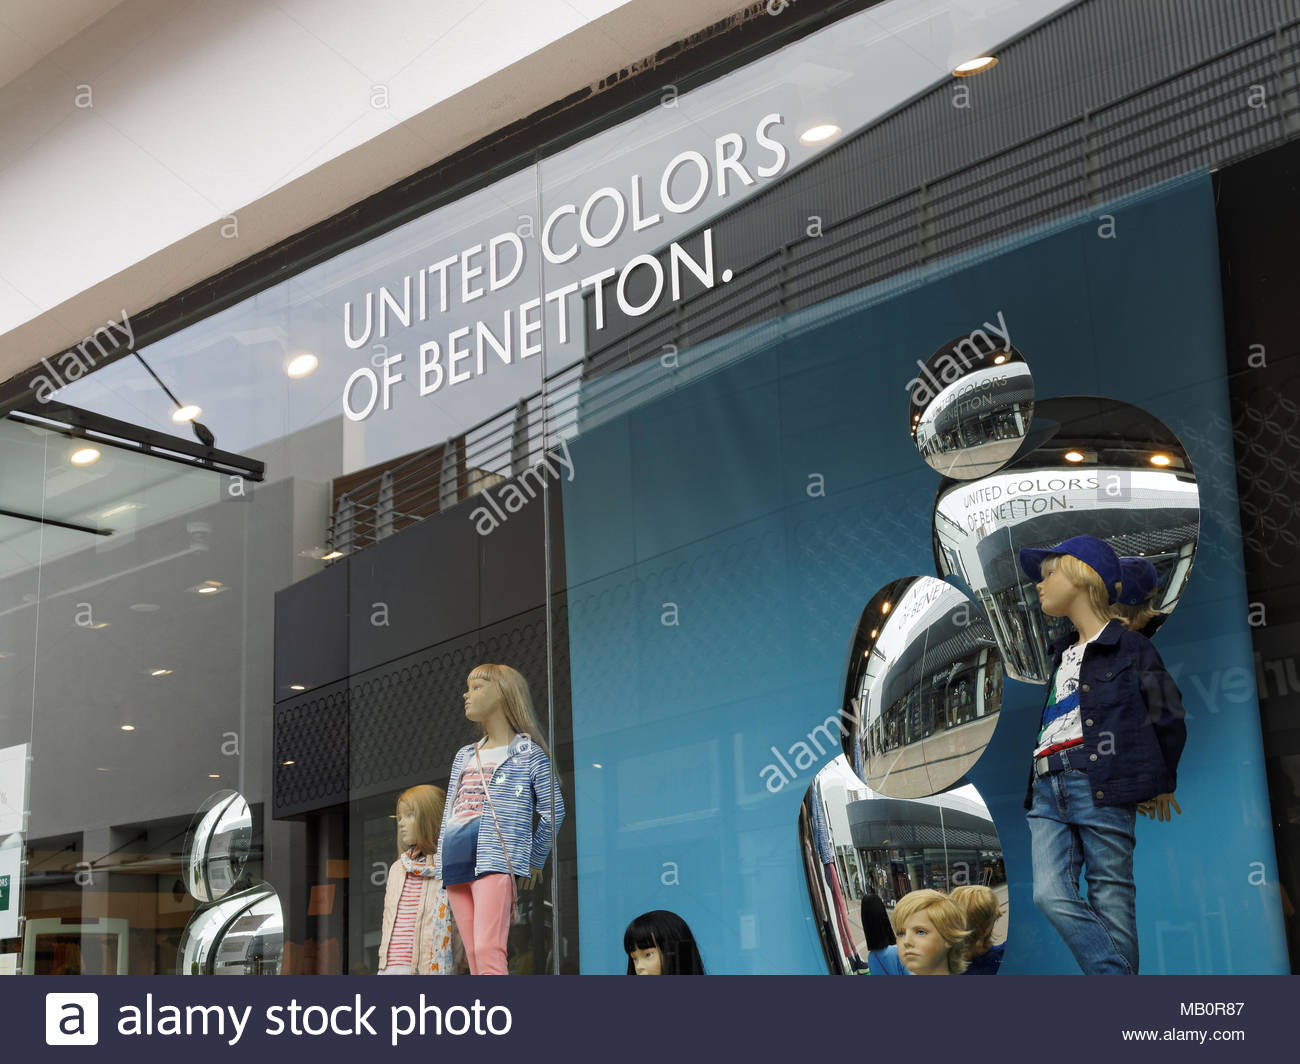 United colors of benetton stock photos united colors of for United colors of benetton online shop outlet